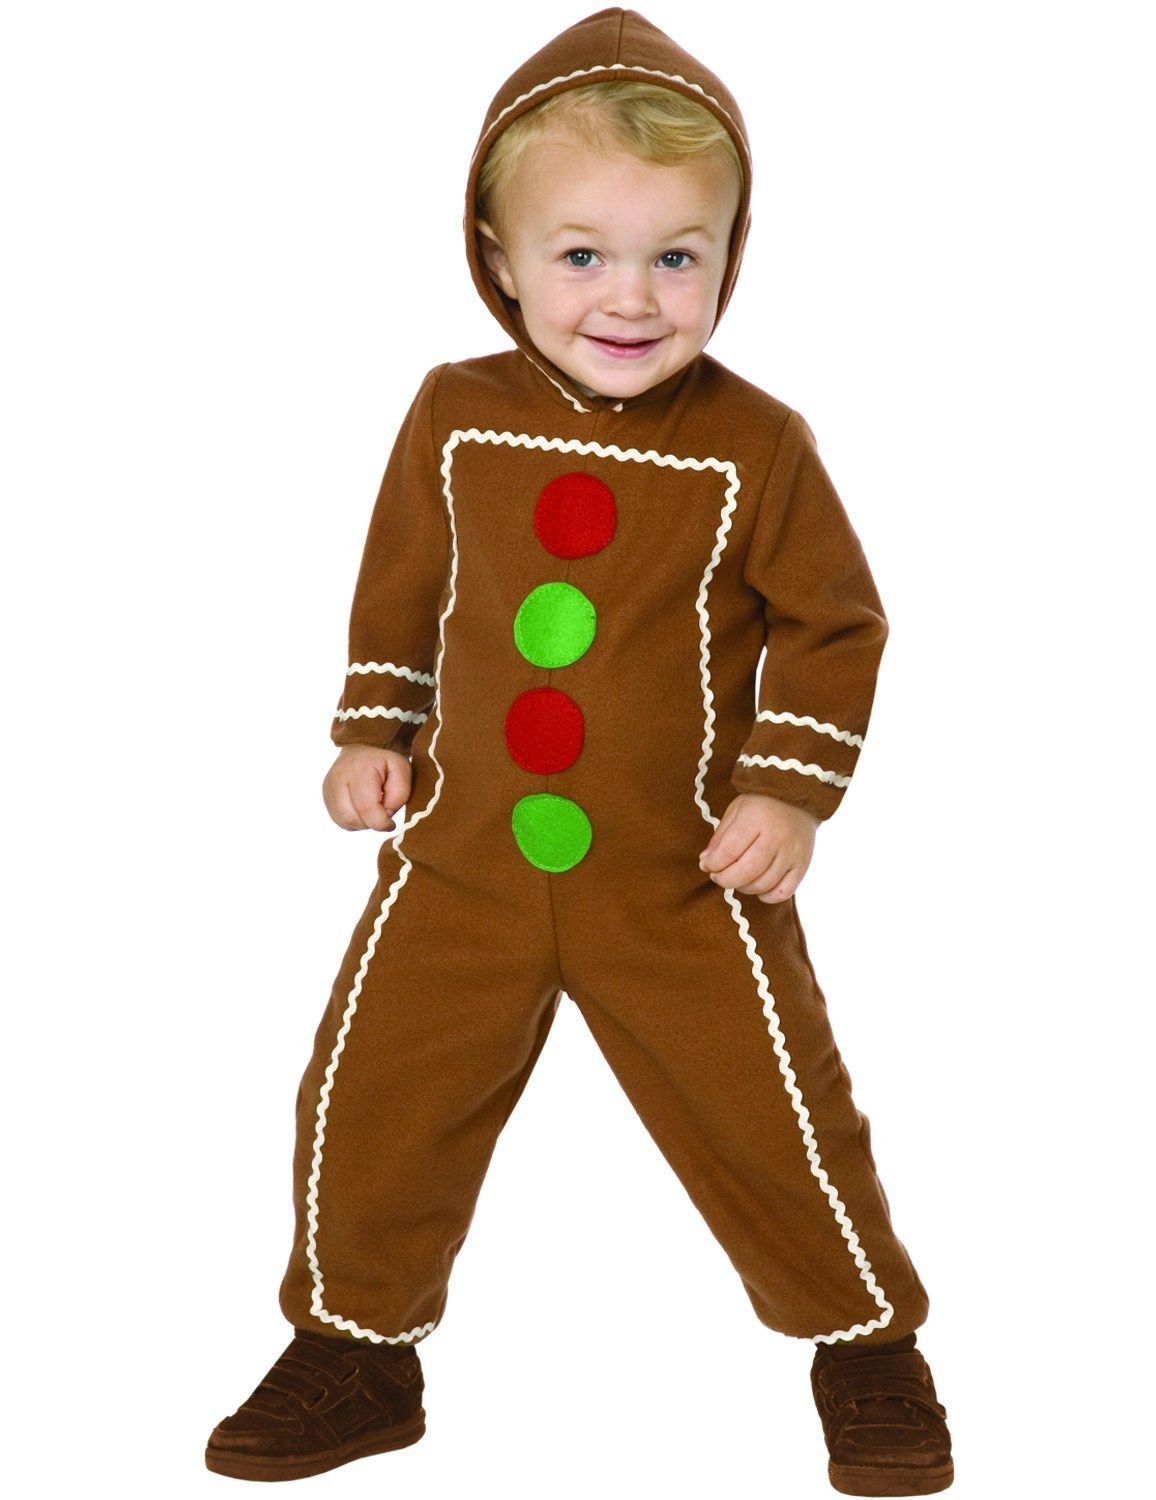 dcf2f7885a4b Child Gingerbread Man Costume … Child Gingerbread Man Costume … Gingerbread  Man Fancy Dress, Gingerbread Man Costumes, Christmas Costumes